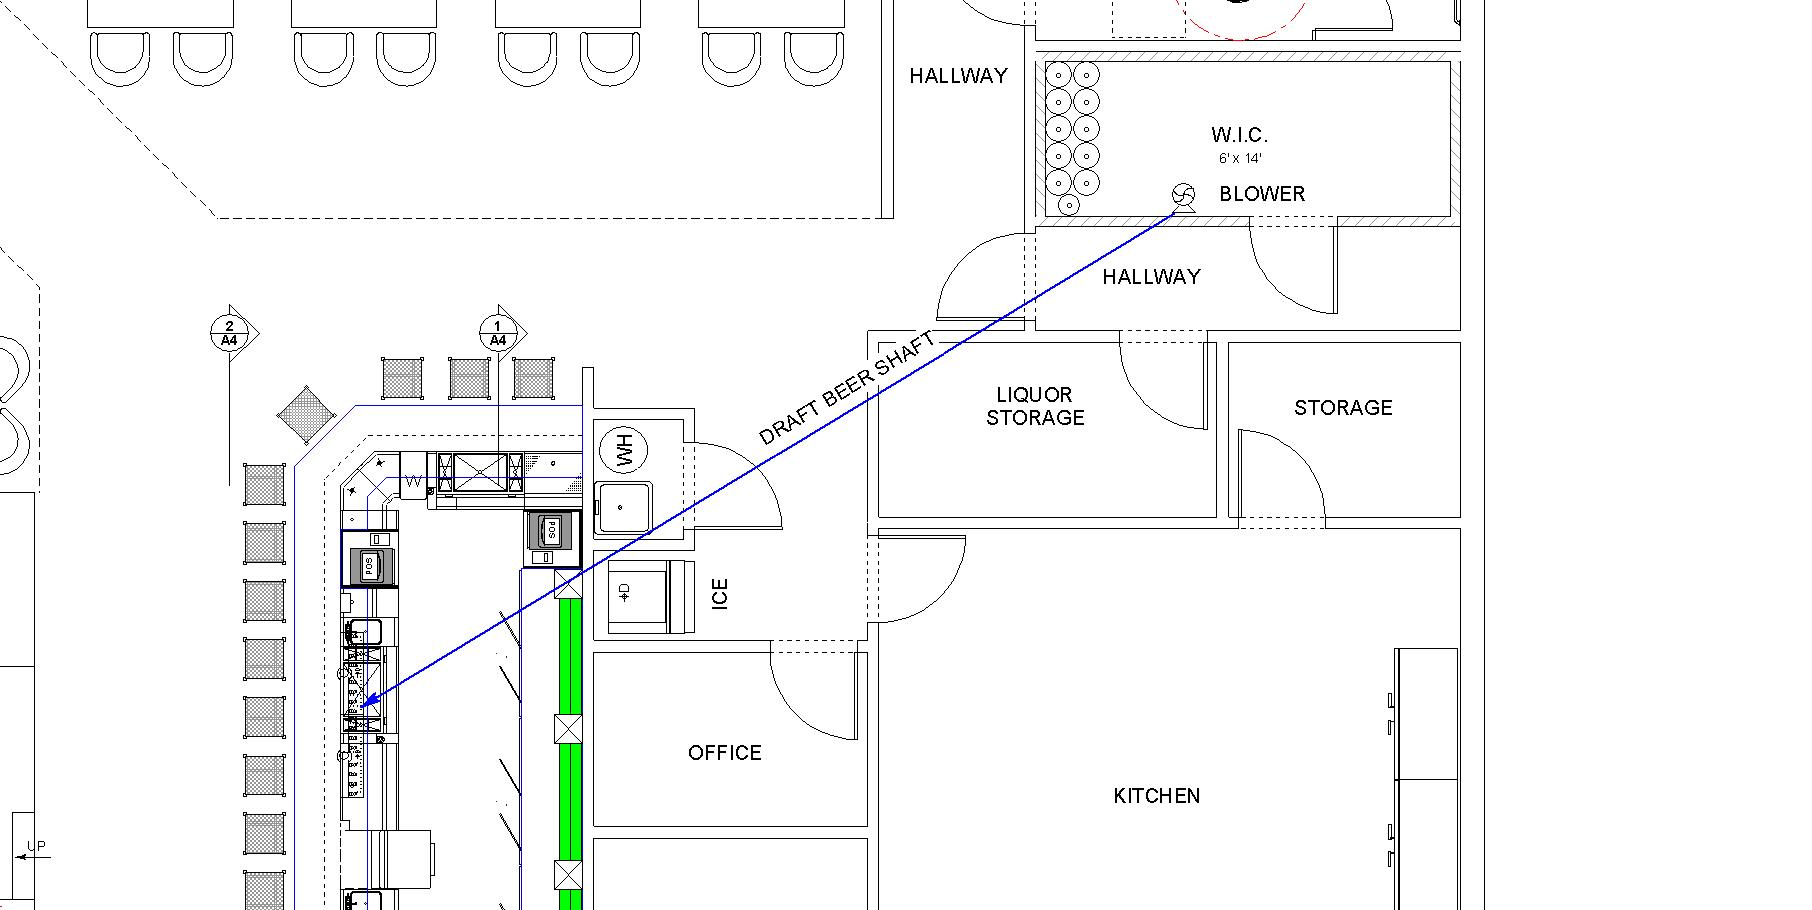 Architectural plan of air cooled draft system in a sports bar